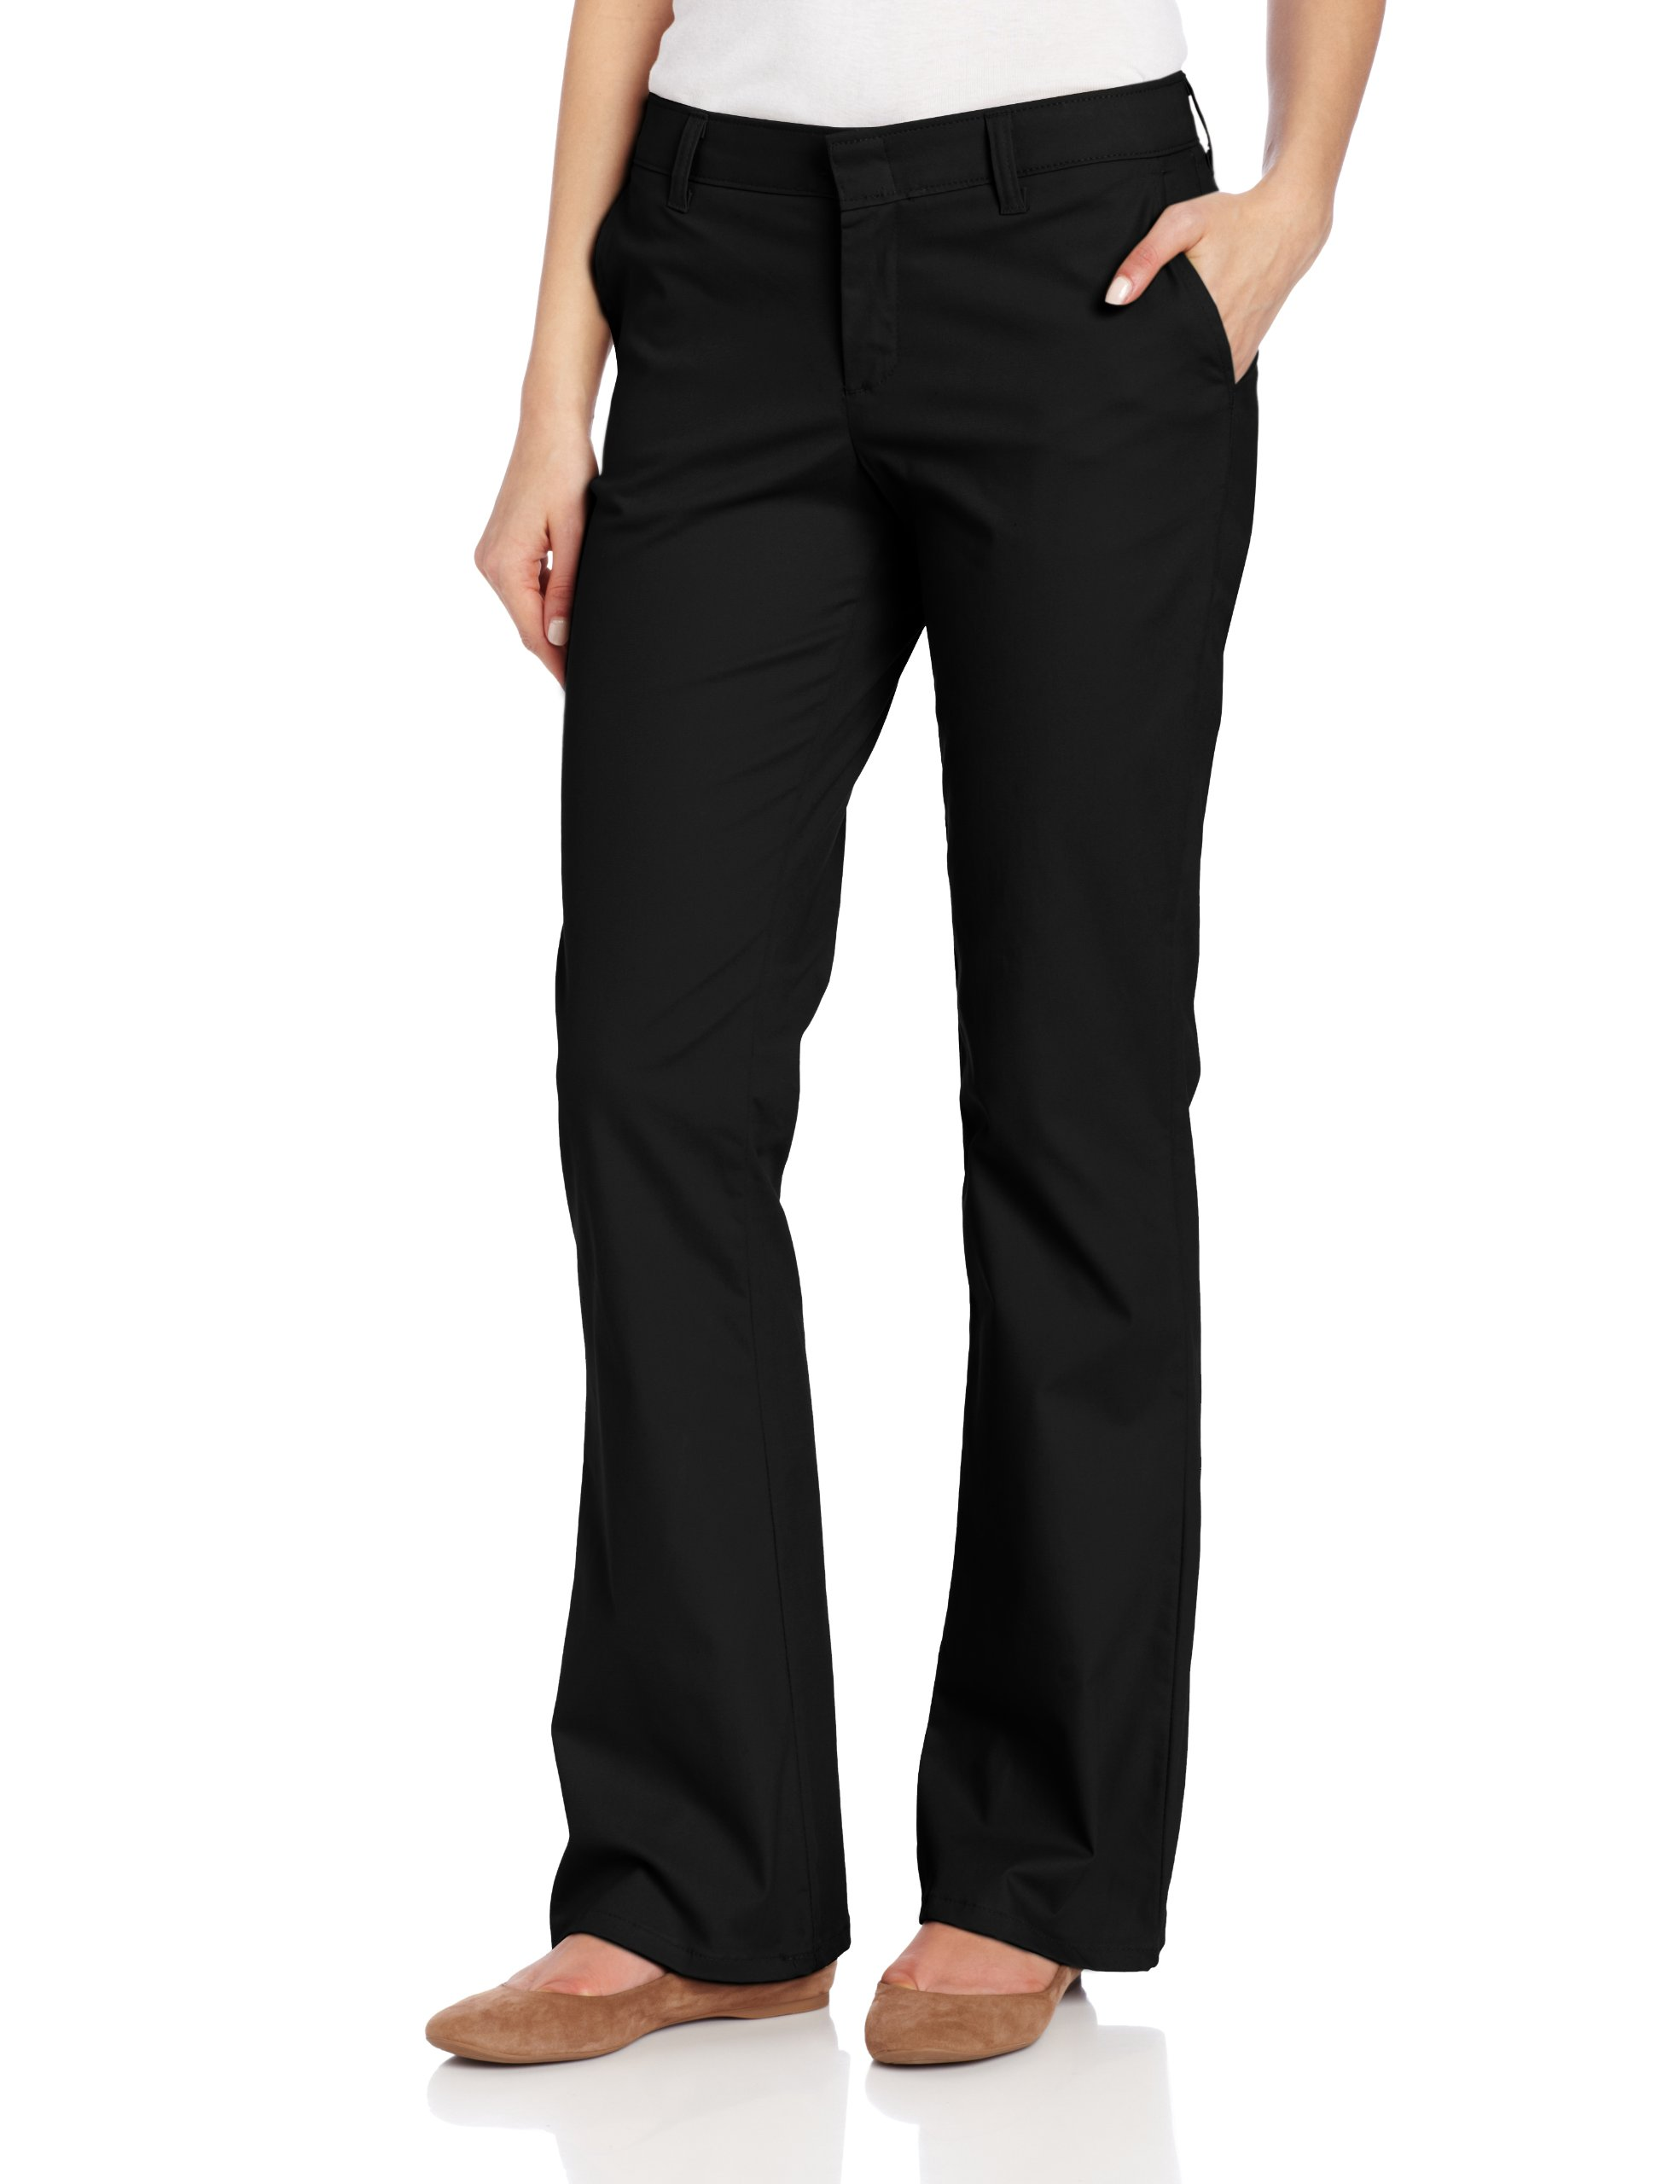 dickies Women's Flat Front Stretch Twill Pant Slim Fit Bootcut, Black, 10 Short by dickies